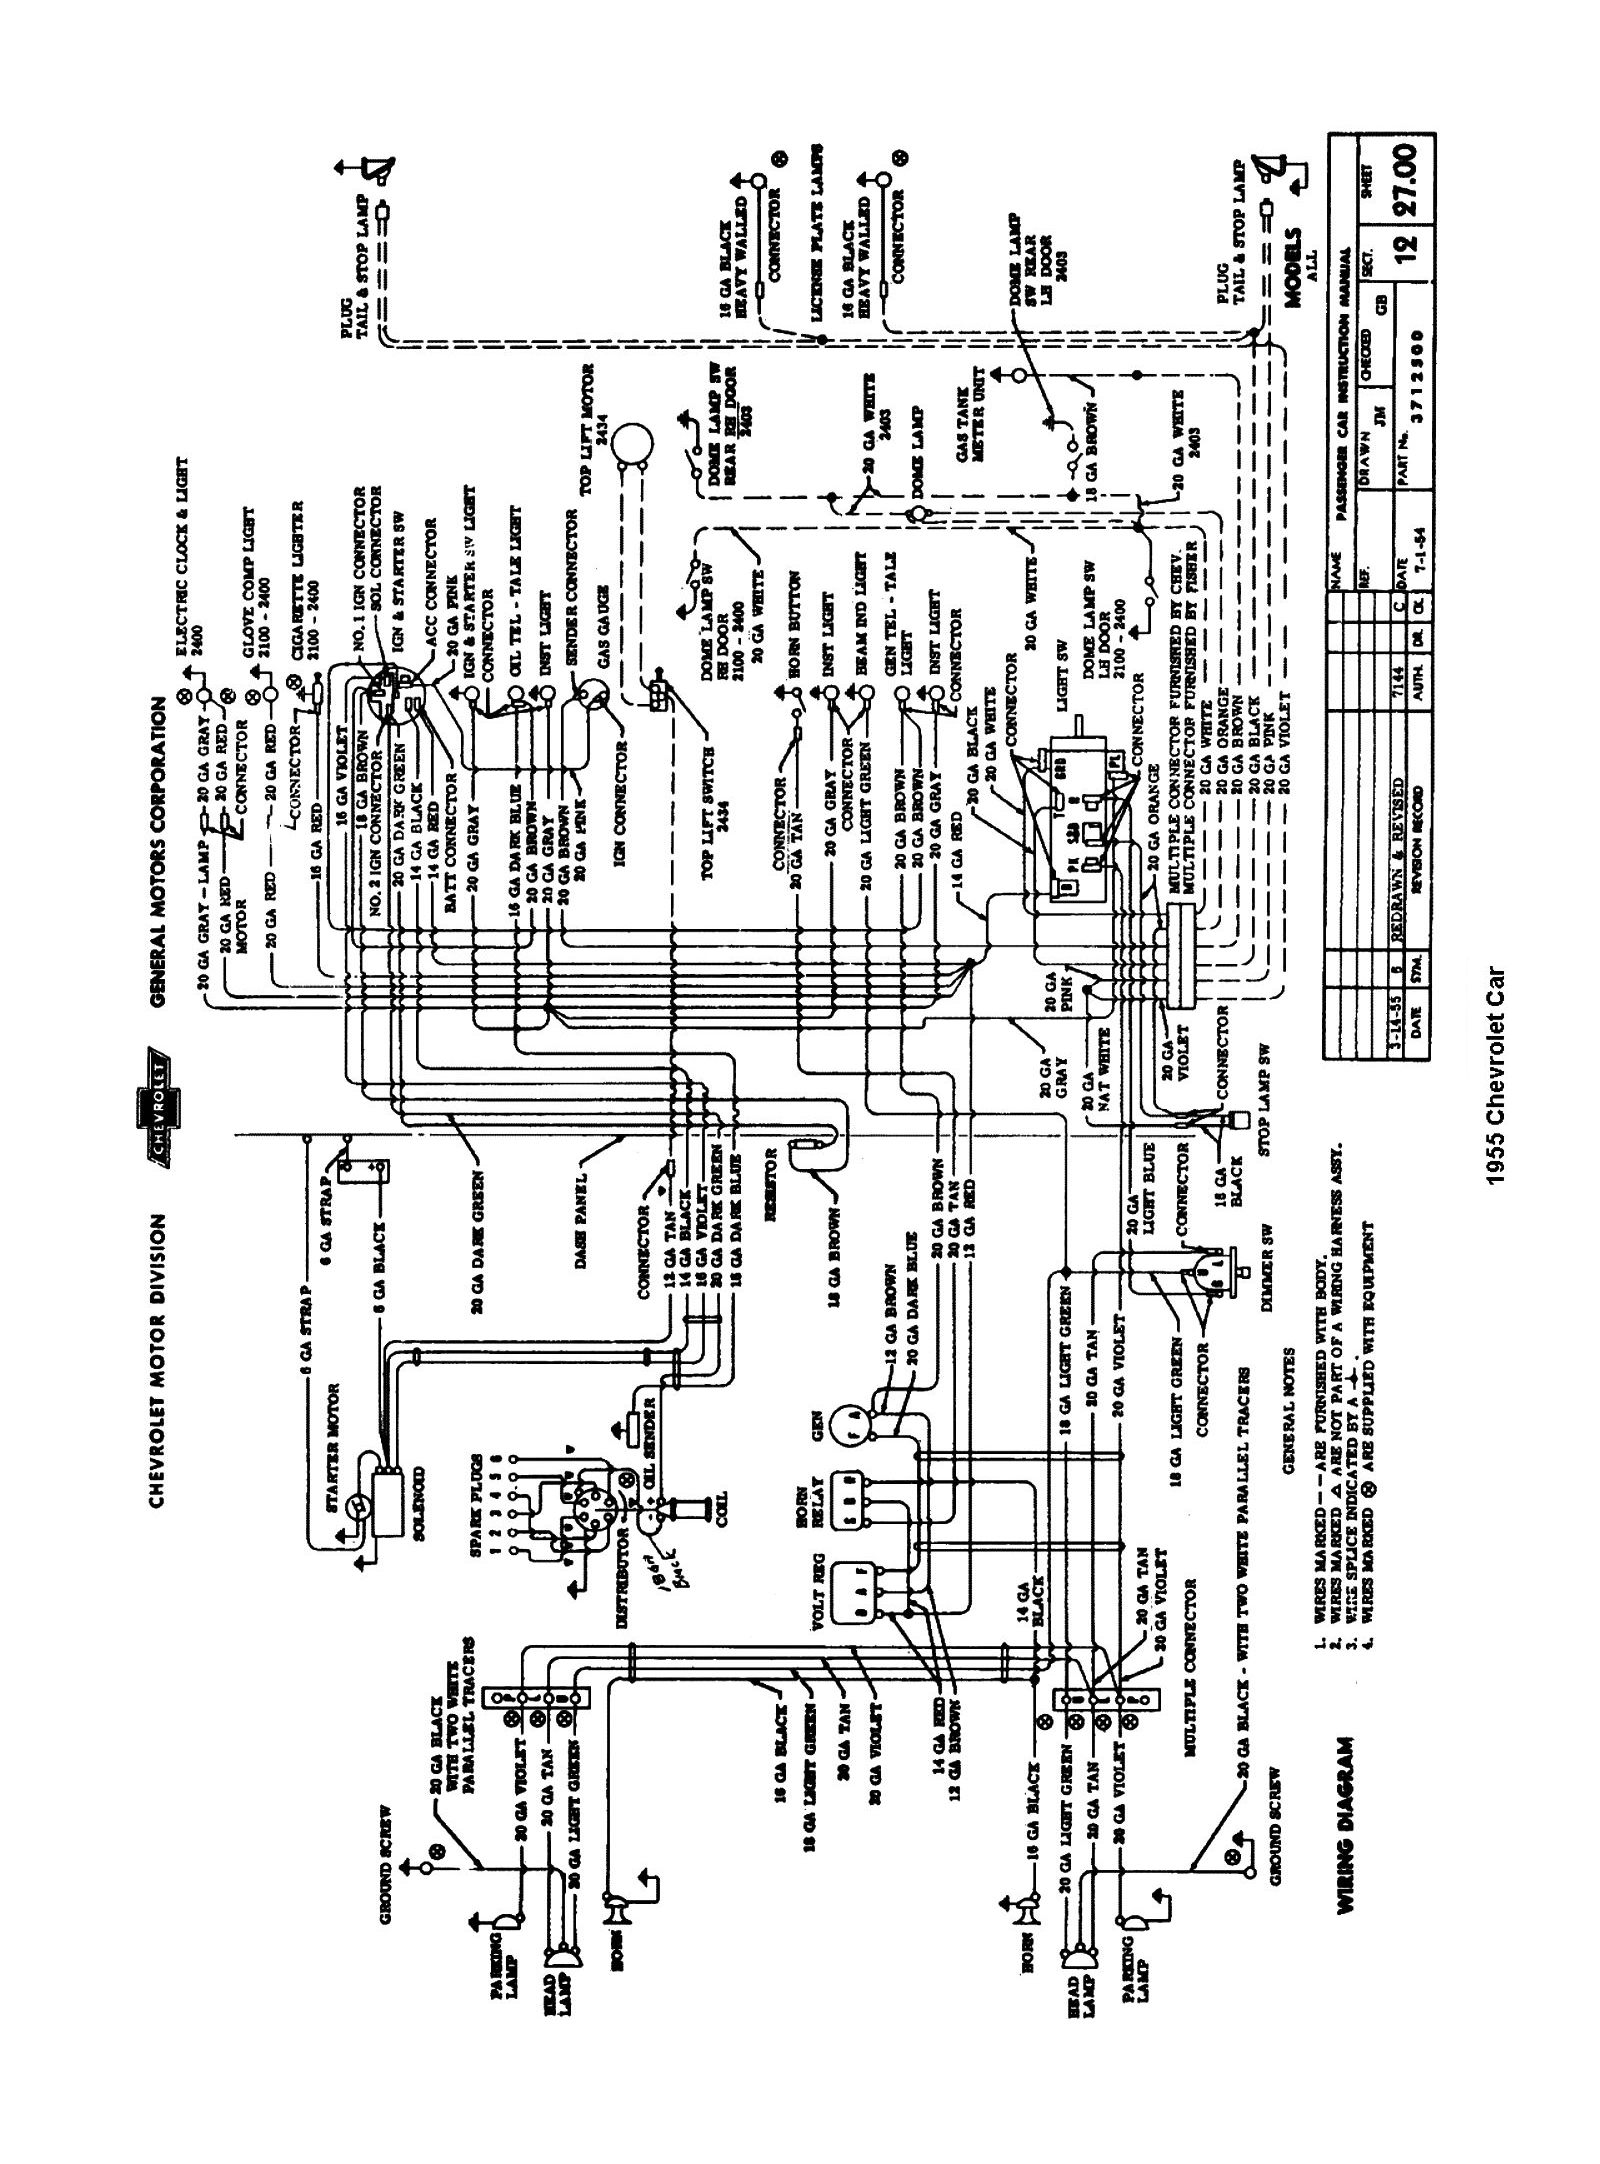 wiring diagrams Wiring Diagram for Recreational Vehicles 1955, 1955 car wiring diagrams · 1955 passenger car wiring Bass Pickup Wiring Diagrams